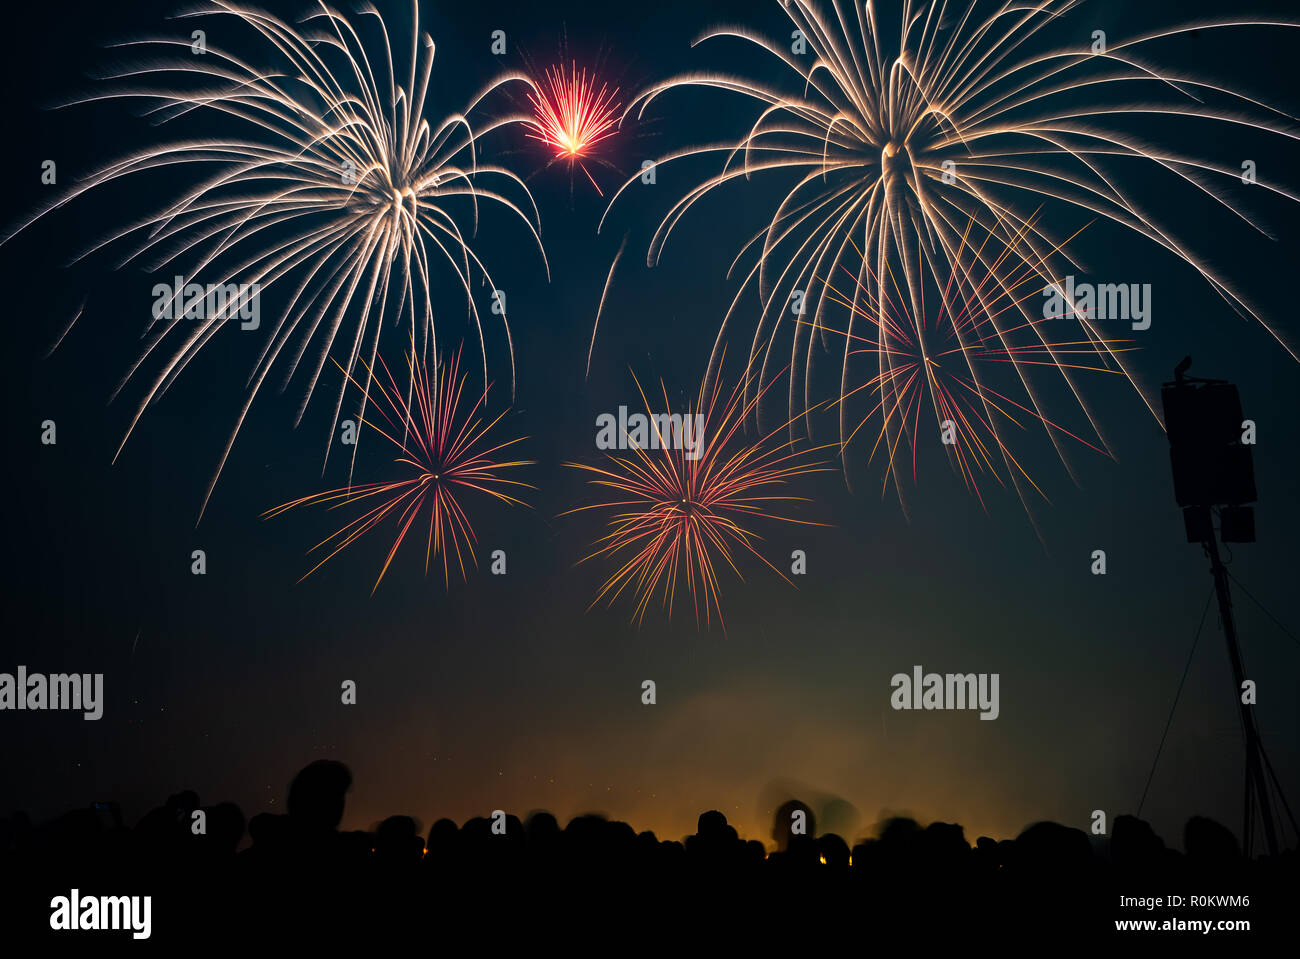 Explosion of firecrackers in the night sky Stock Photo